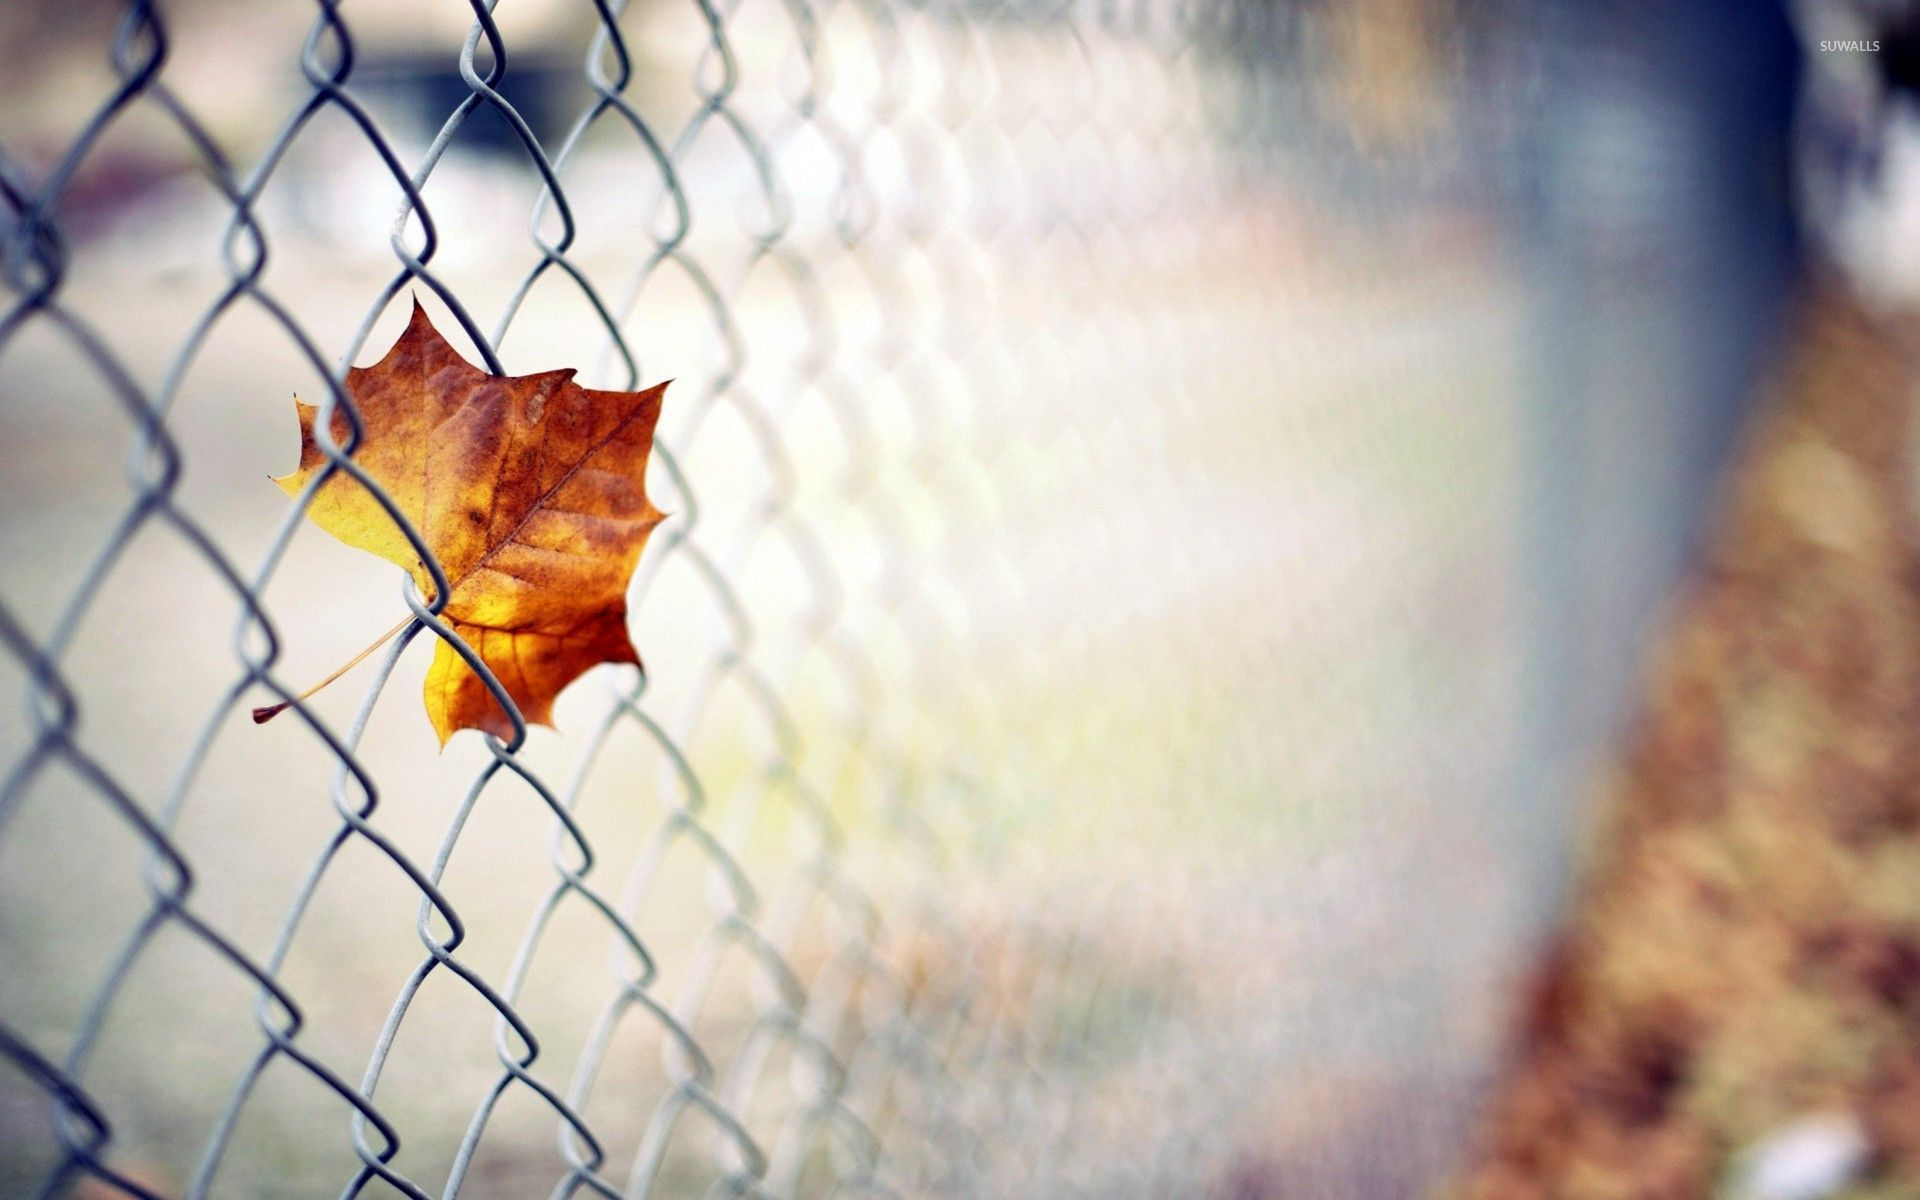 Good Fencing Wallpaper - leaf-in-a-fence-33150-1920x1200  2018_928563.jpg